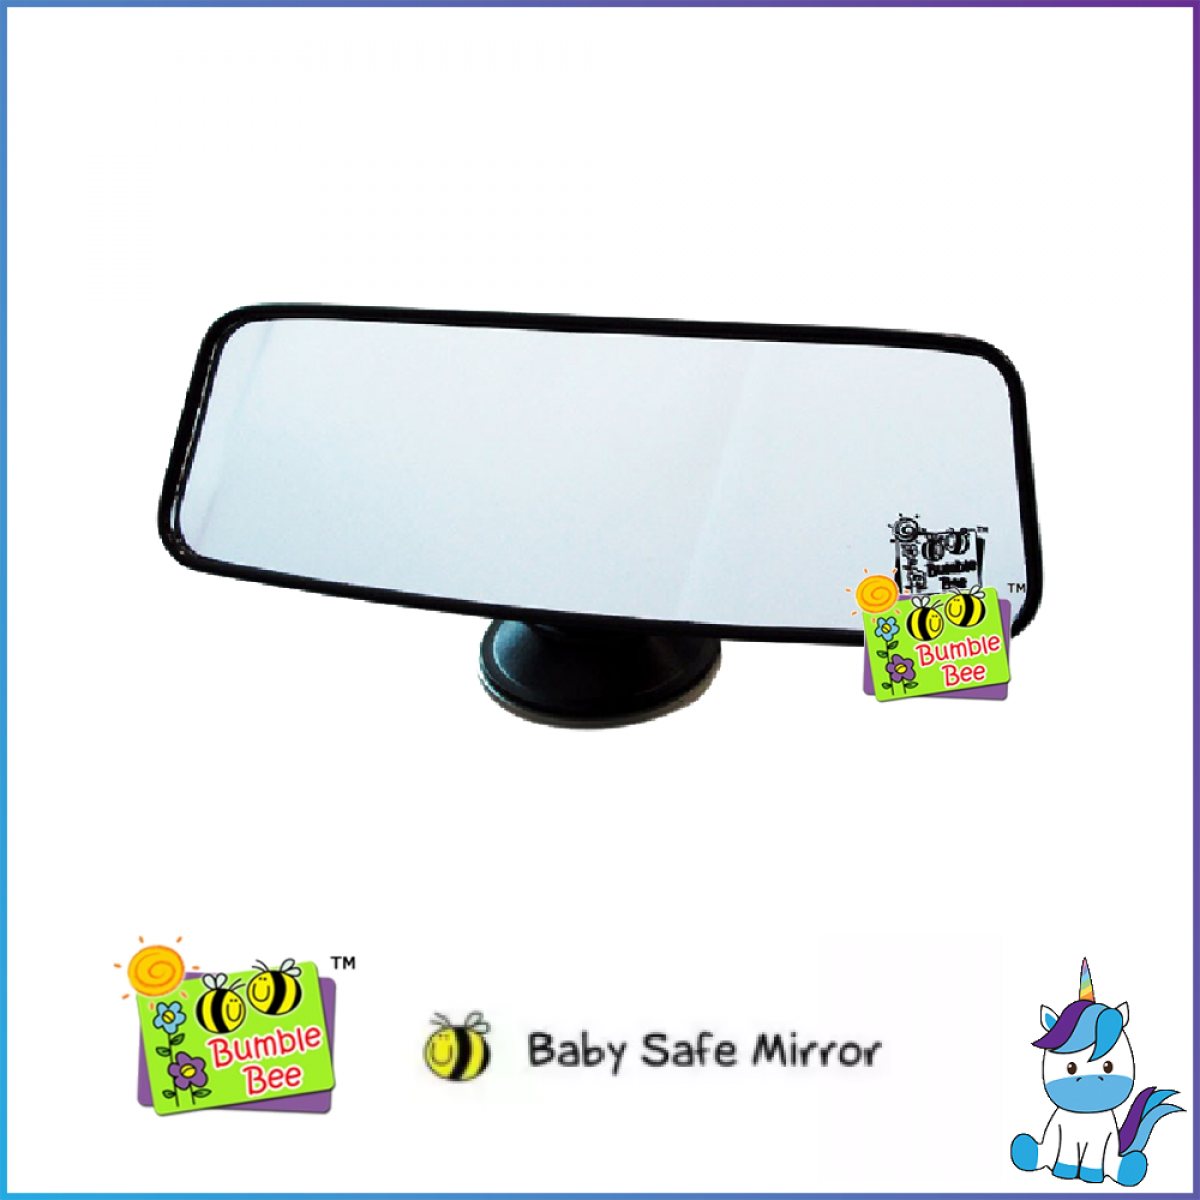 Bumble Bee Baby Safe Mirror